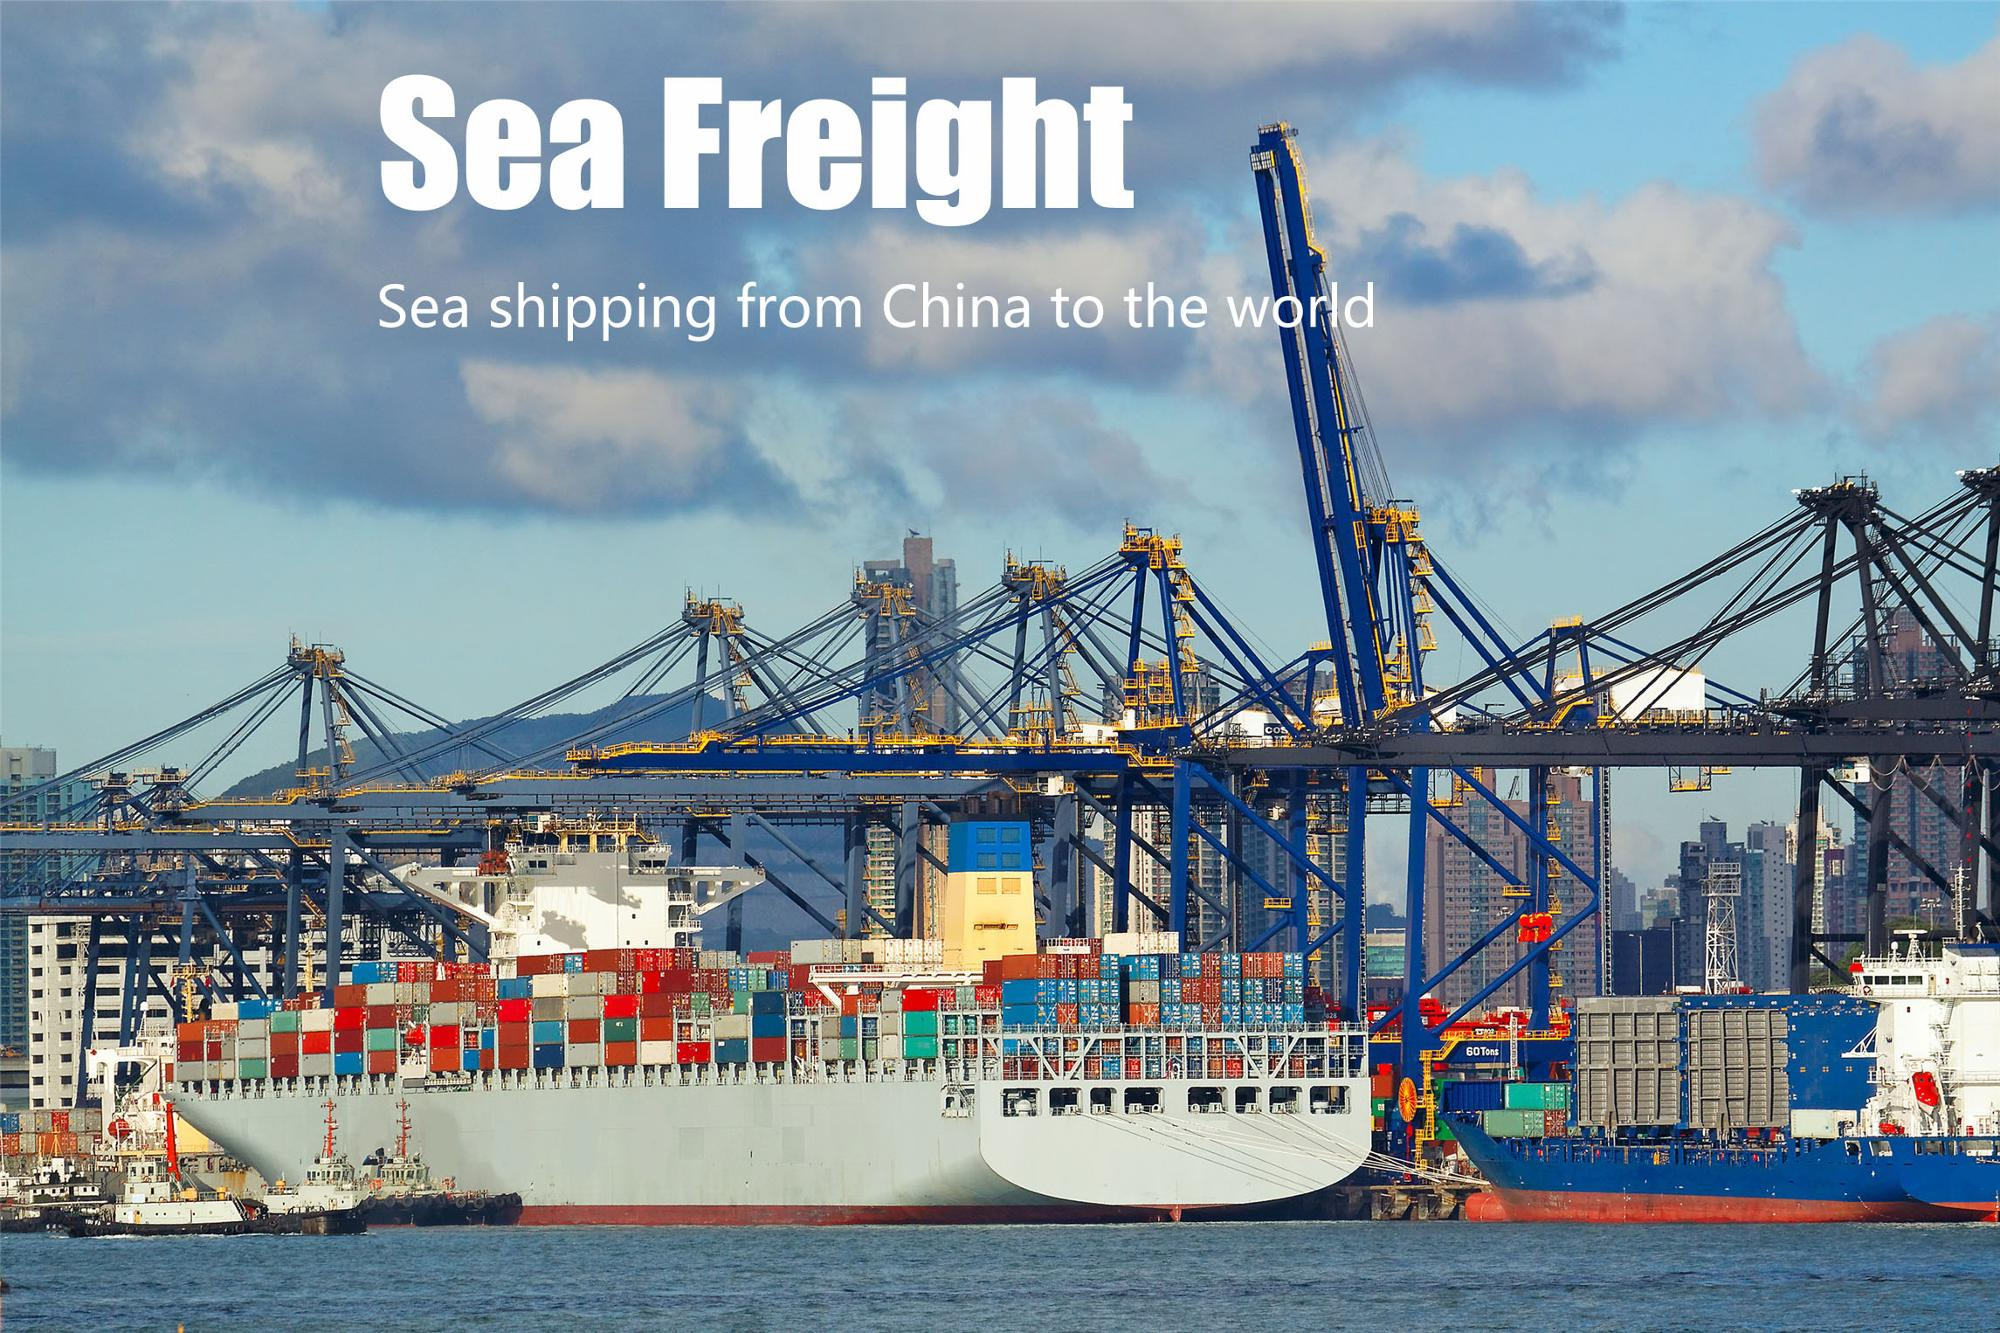 Dhl Ems Tnt Air Express Freight Shipping From China To Albania Rumania Door  To Door - Buy Shipping From China To Albania,Air Freight,Air Express